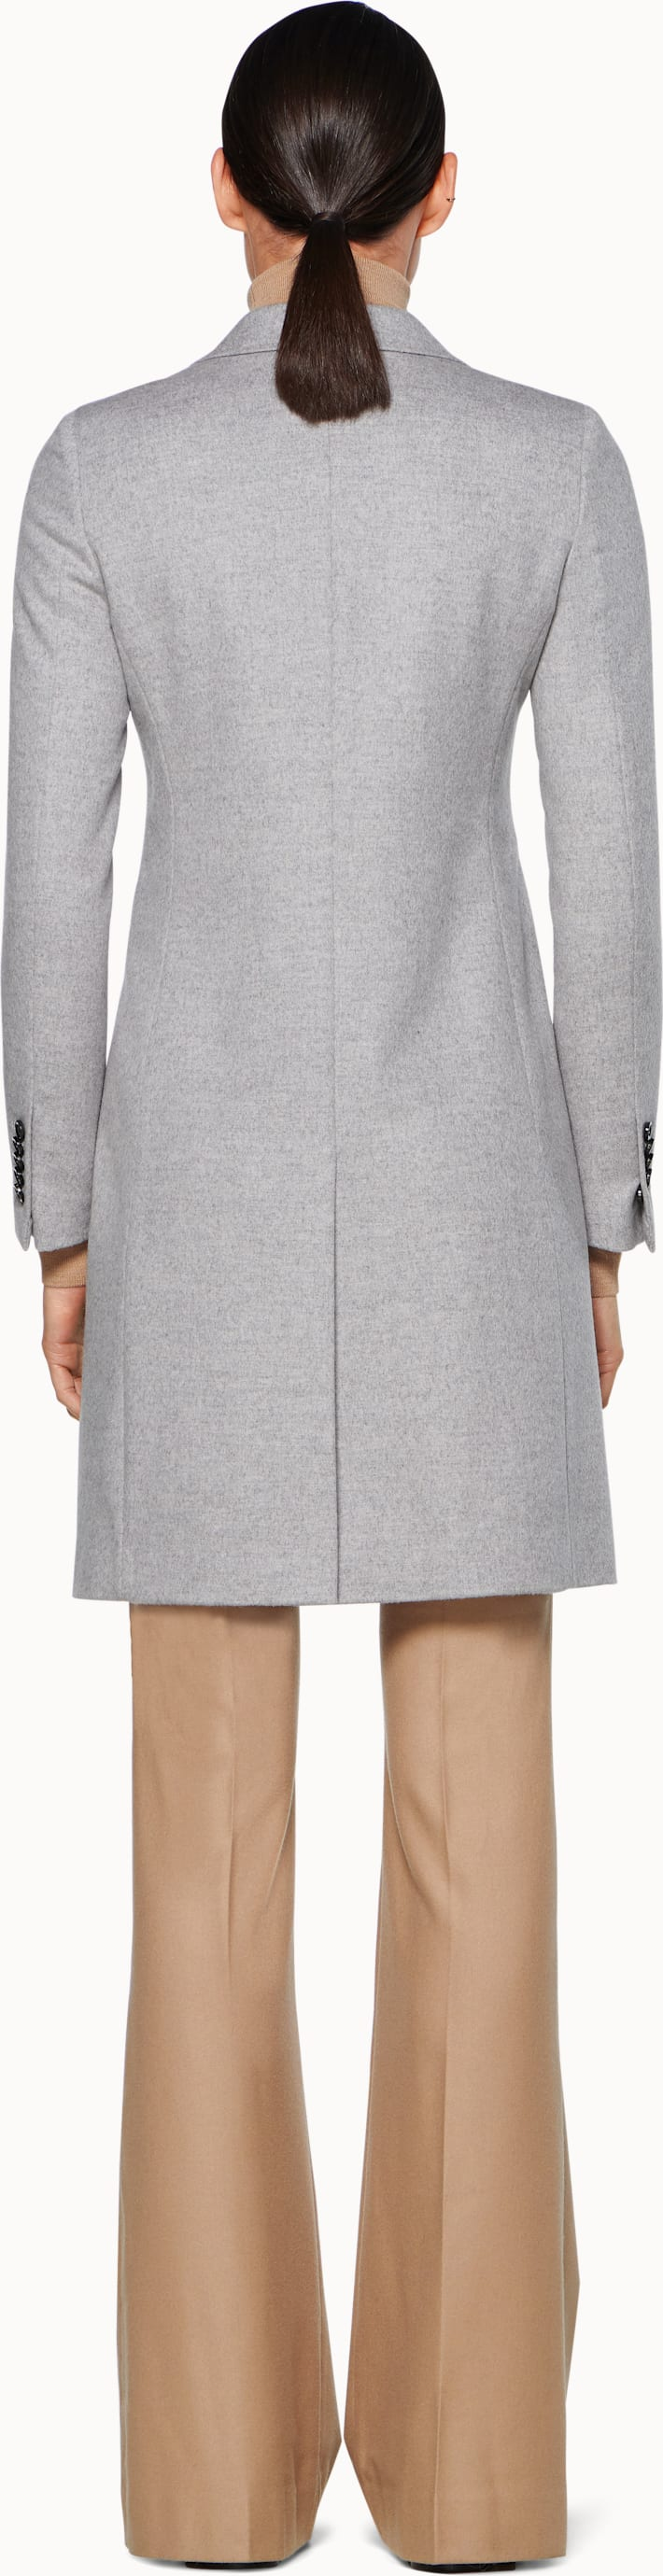 Light Grey Overcoat